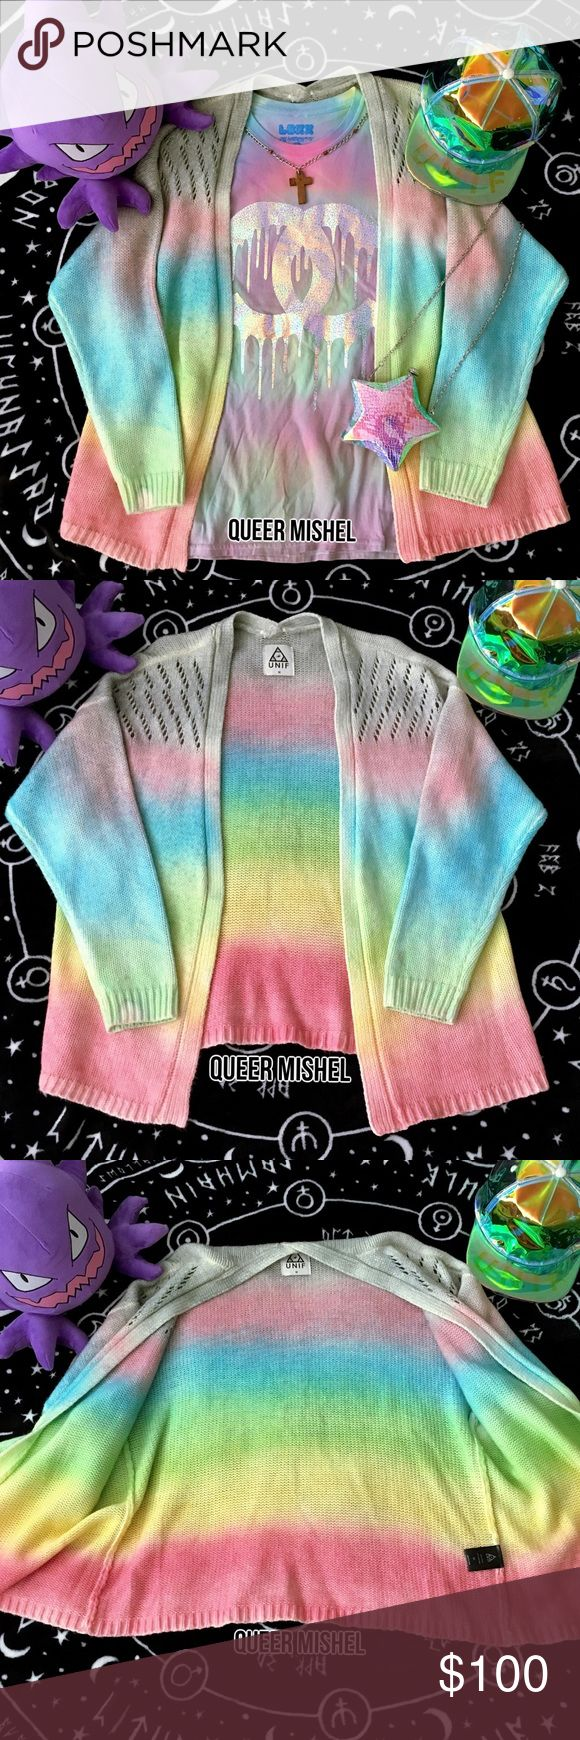 UNIF Cake Cardigan Sweater This ombre rainbow cardi is a pastel treasure & mine is vibrant compared to most I've seen. ✨ I had it sent to my parents & they didn't see the small factory dye defect on the sleeve, which the seller failed to mention. Still very beautiful & essential oldie UNIF collector's piece! I just never got around to wearing it. Very soft & lightly cozy. Perfect for crisp weather. Minor wear. Good Used Condition. I will be losing money & it's priced less than retail. {fairy…